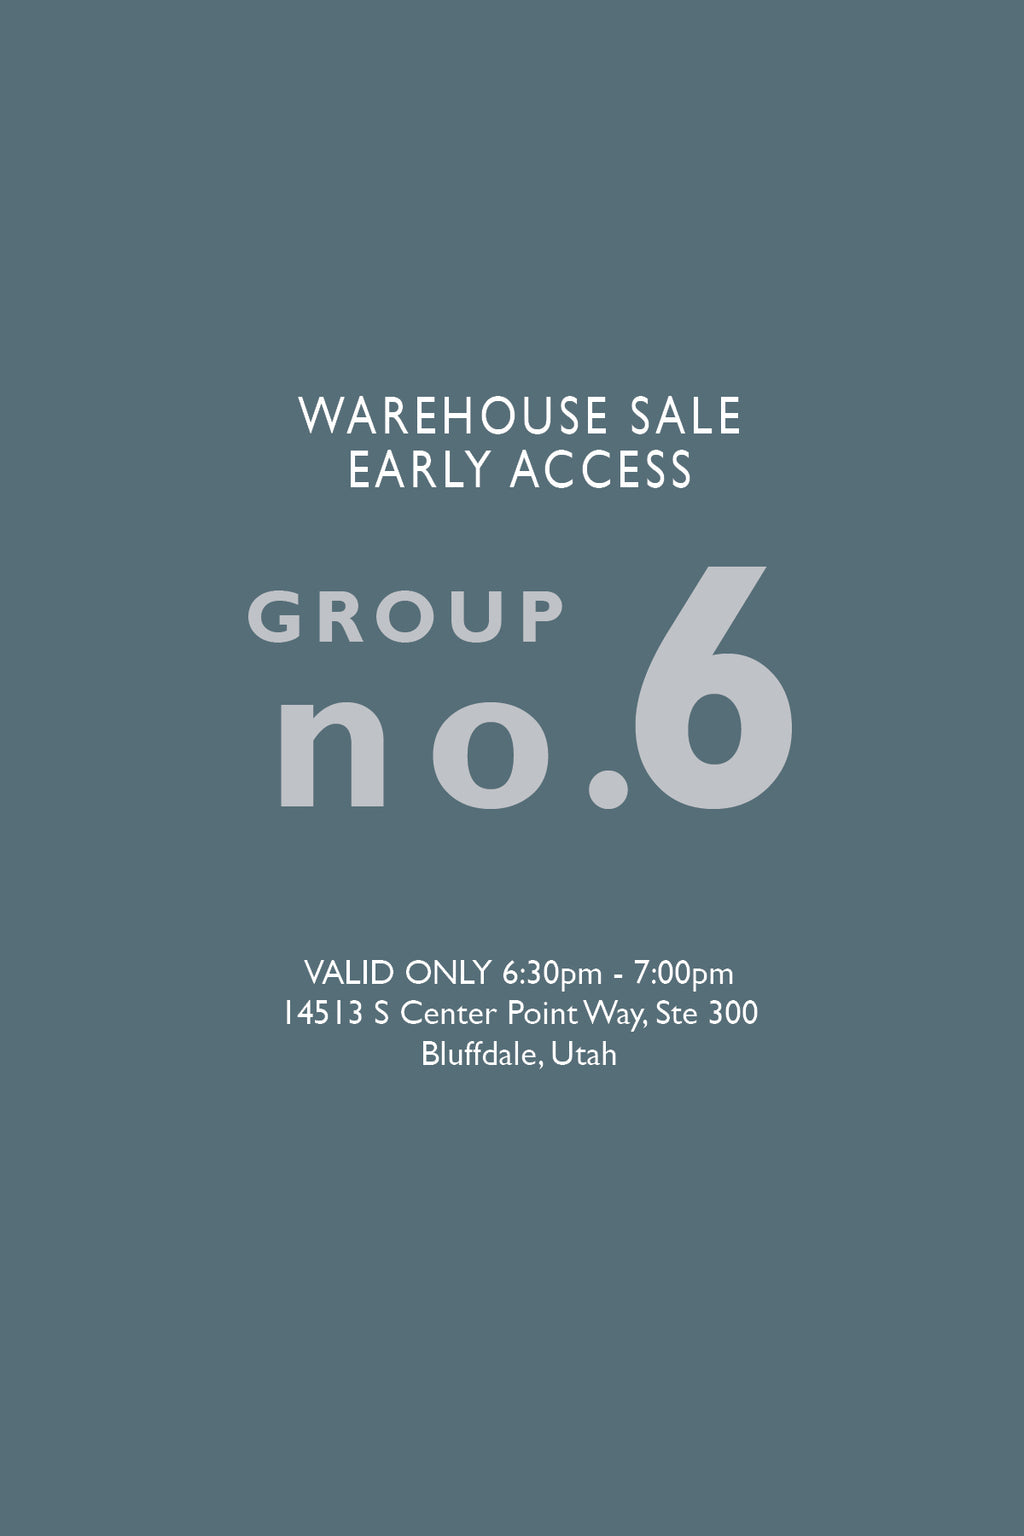 Warehouse Sale EARLY ACCESS: Group No. 6 | 6:30-7:00pm